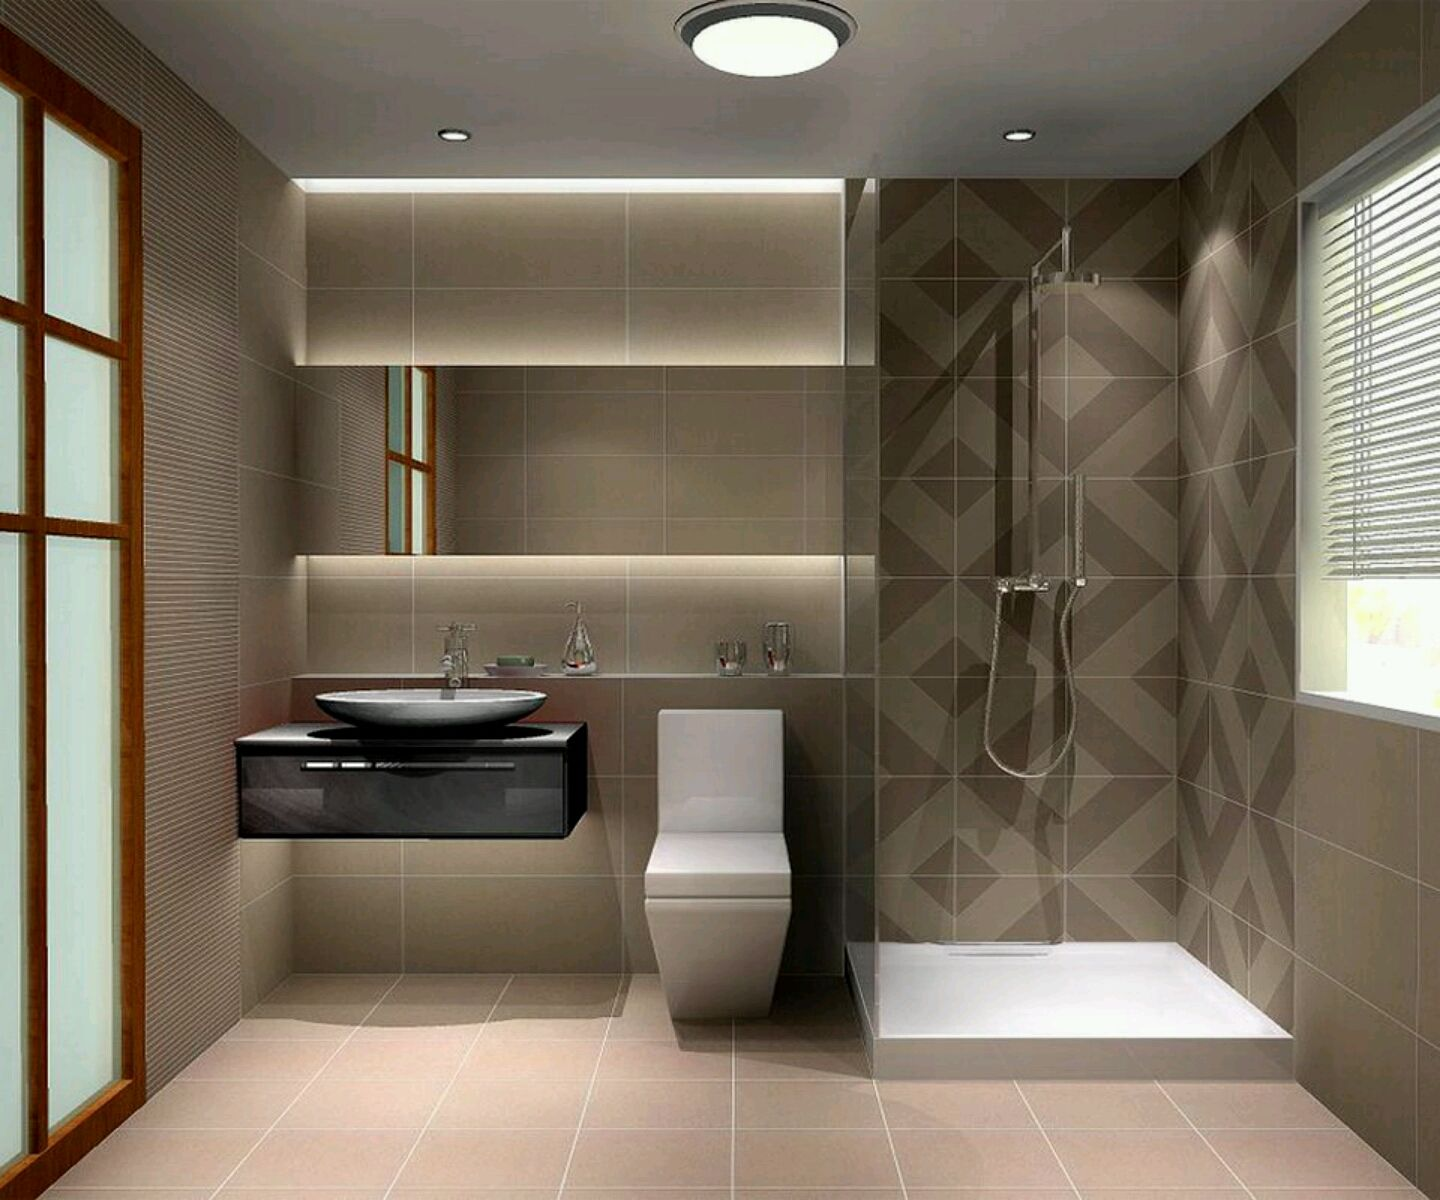 Contemporary Bathroom Accessories Decoration Home Decor - Bathroom accessories for small bathroom ideas